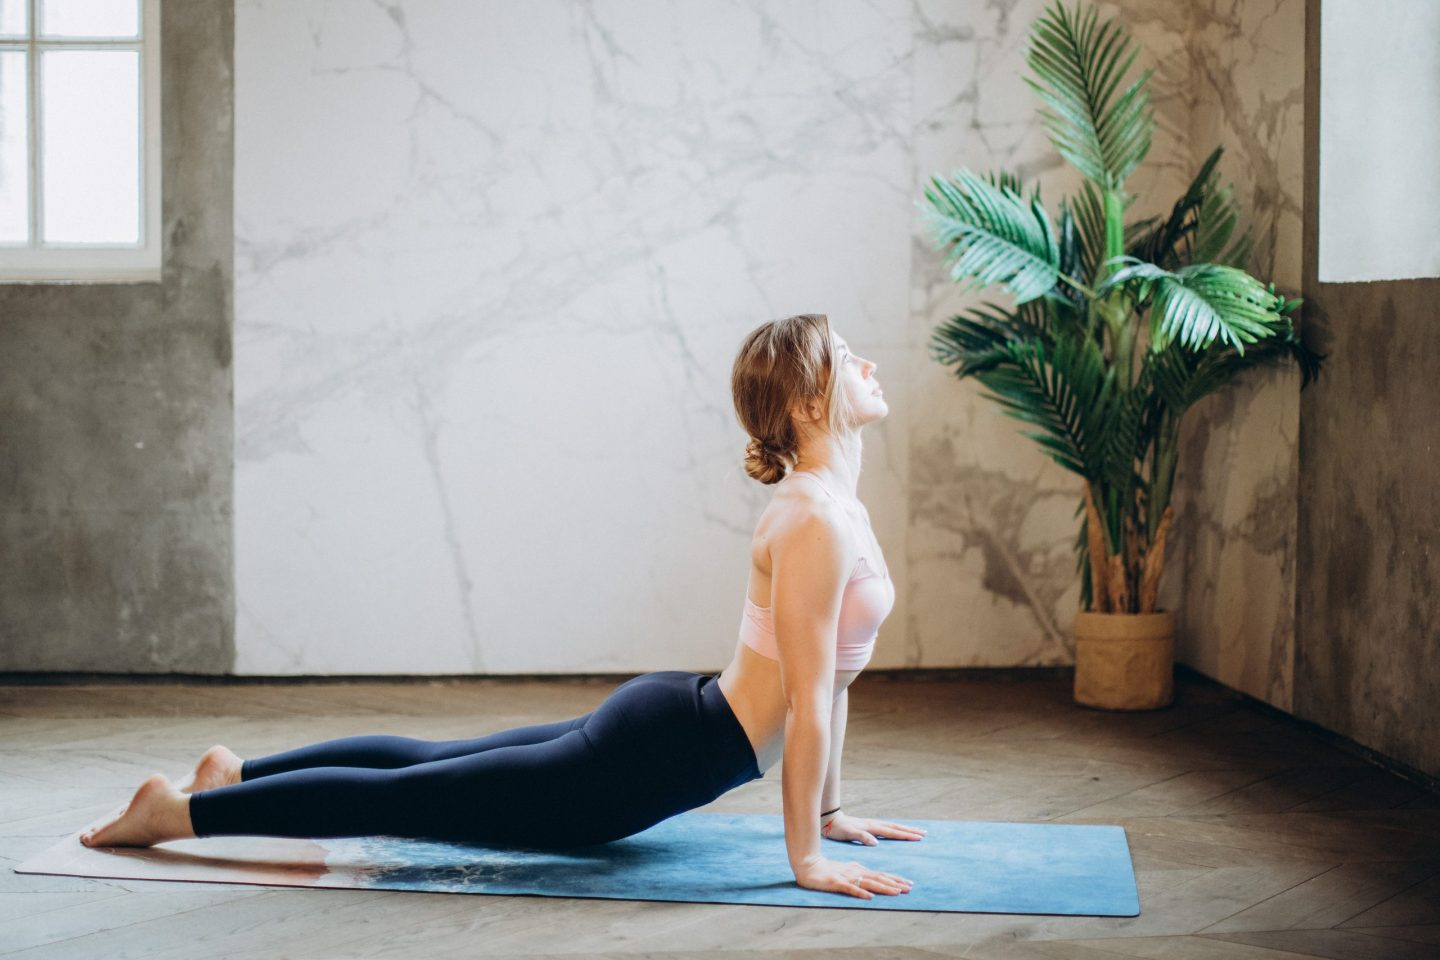 Yoga Clothing Care Tips: What You Need To Know